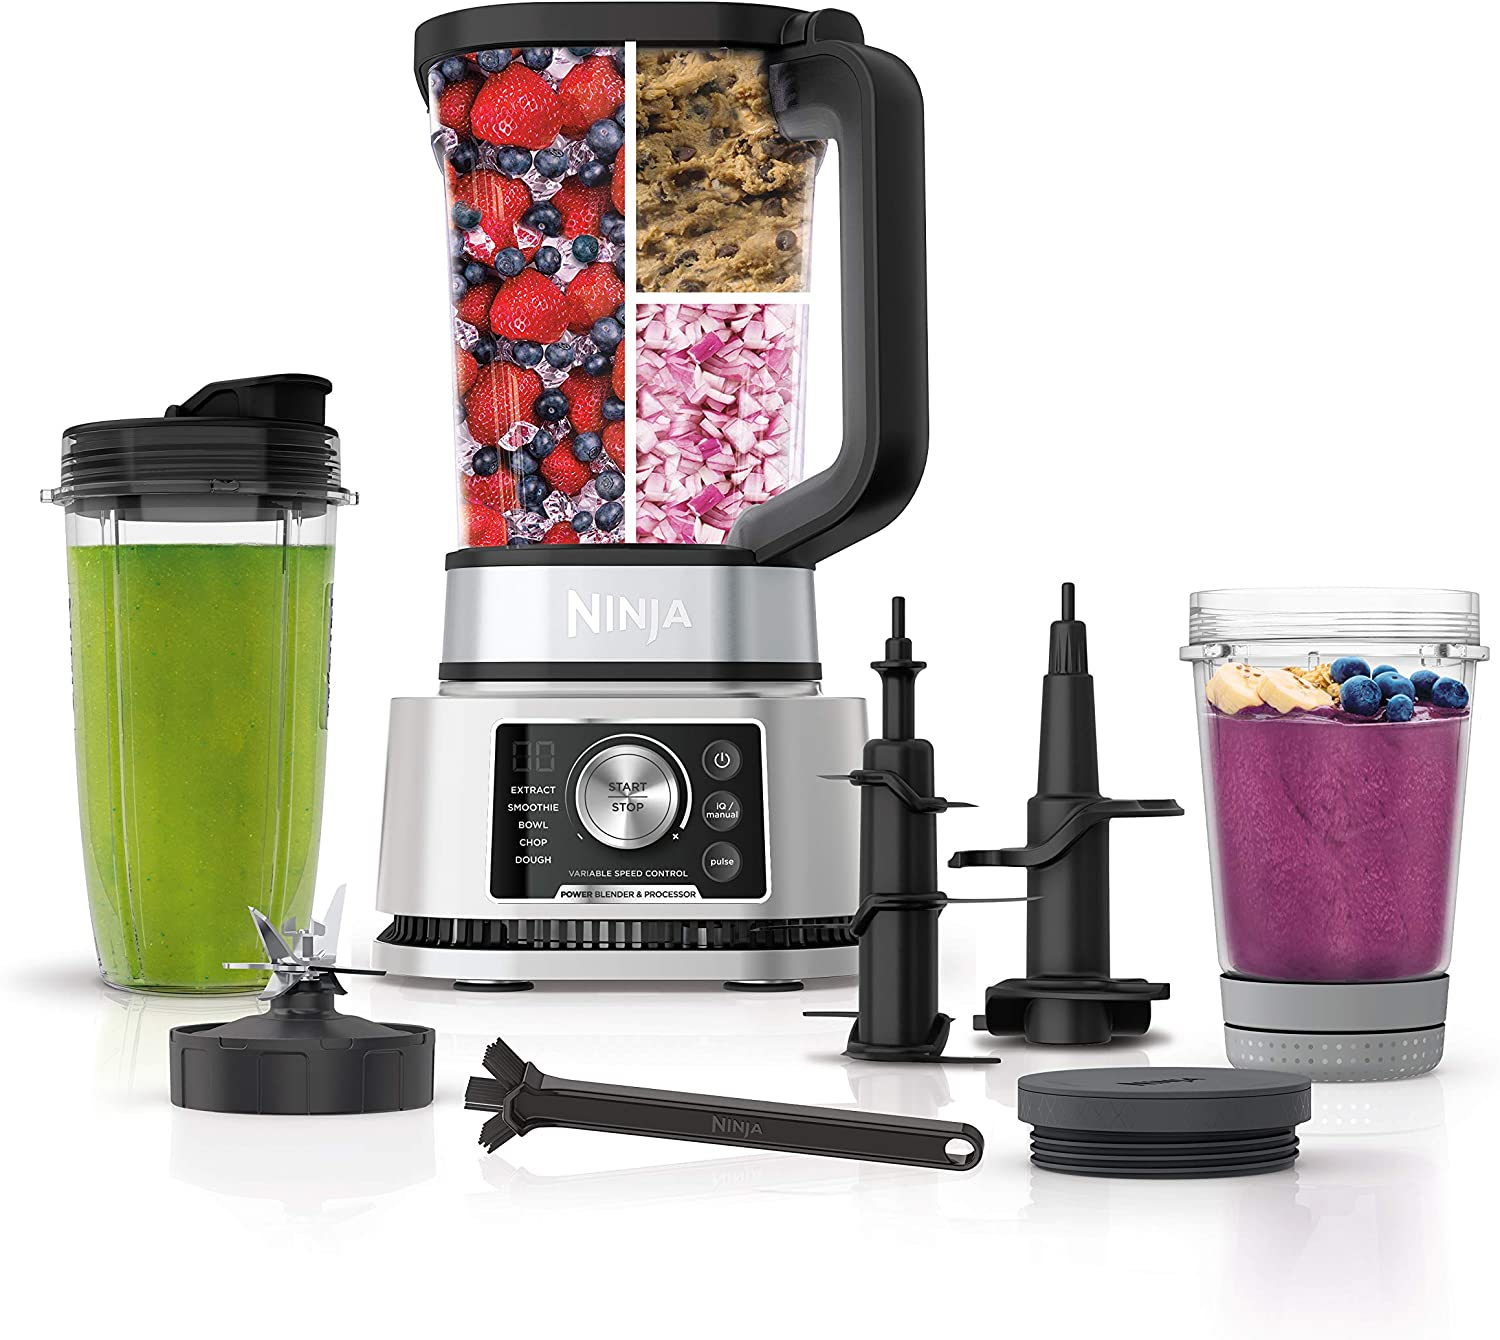 Ninja Foodi SS351 Power Blender & Processor System with Smoothie Bowl Maker and Nutrient Extractor*. 4in1 Blender + Food Processor, 1400WP smartTORQUE 6 Auto-iQ Presets